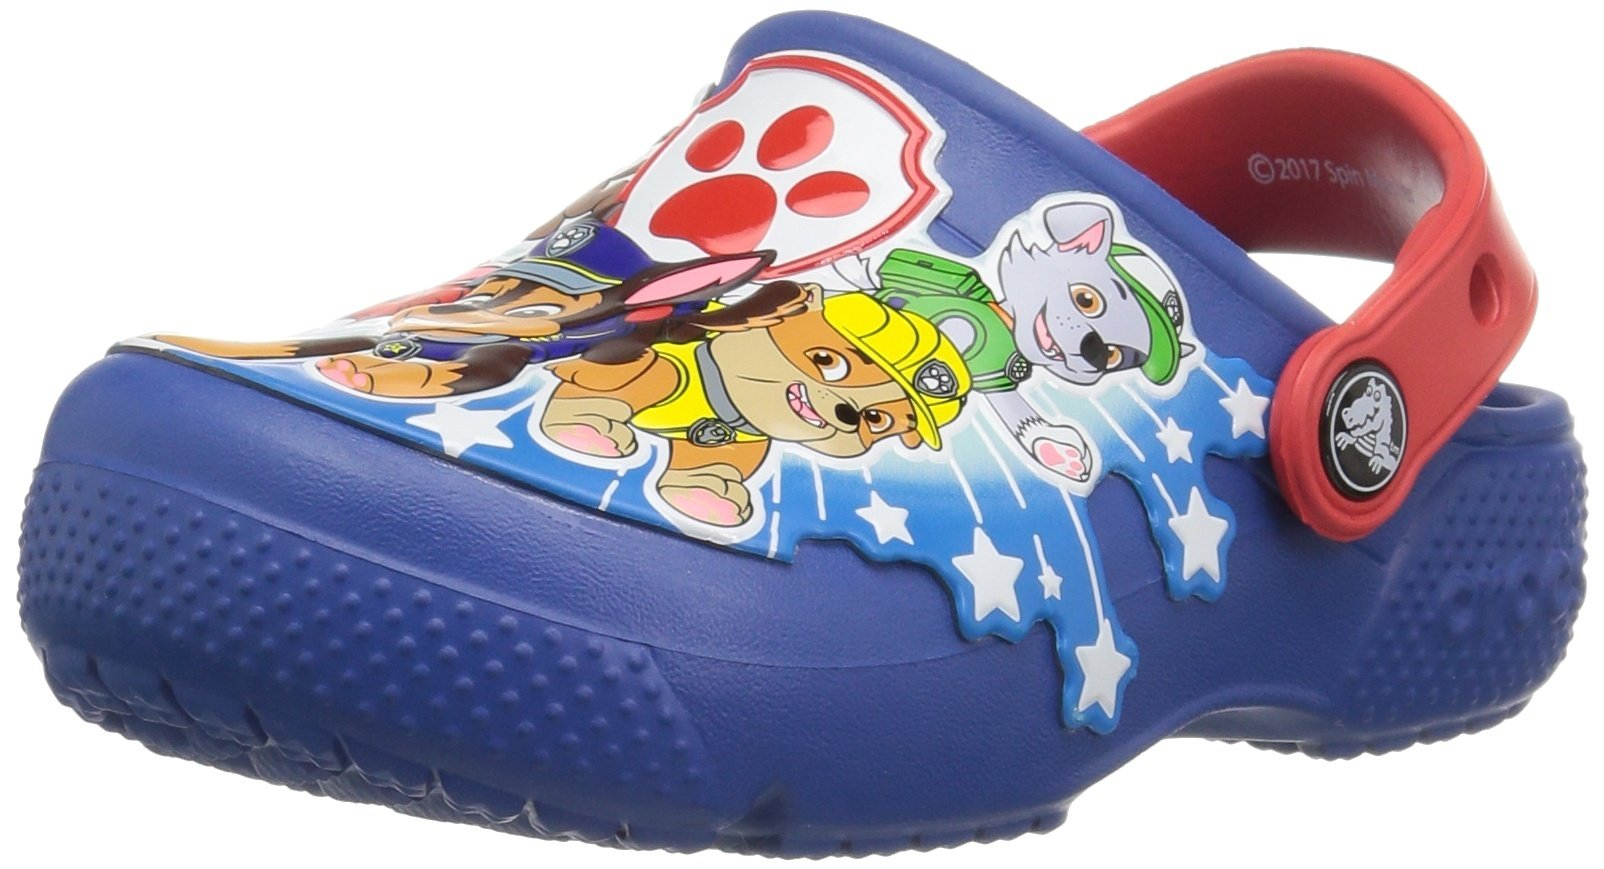 Crocs Boys' funlab Pawpatrol K Clog, Blue Jean, 6 M US Toddler by Crocs